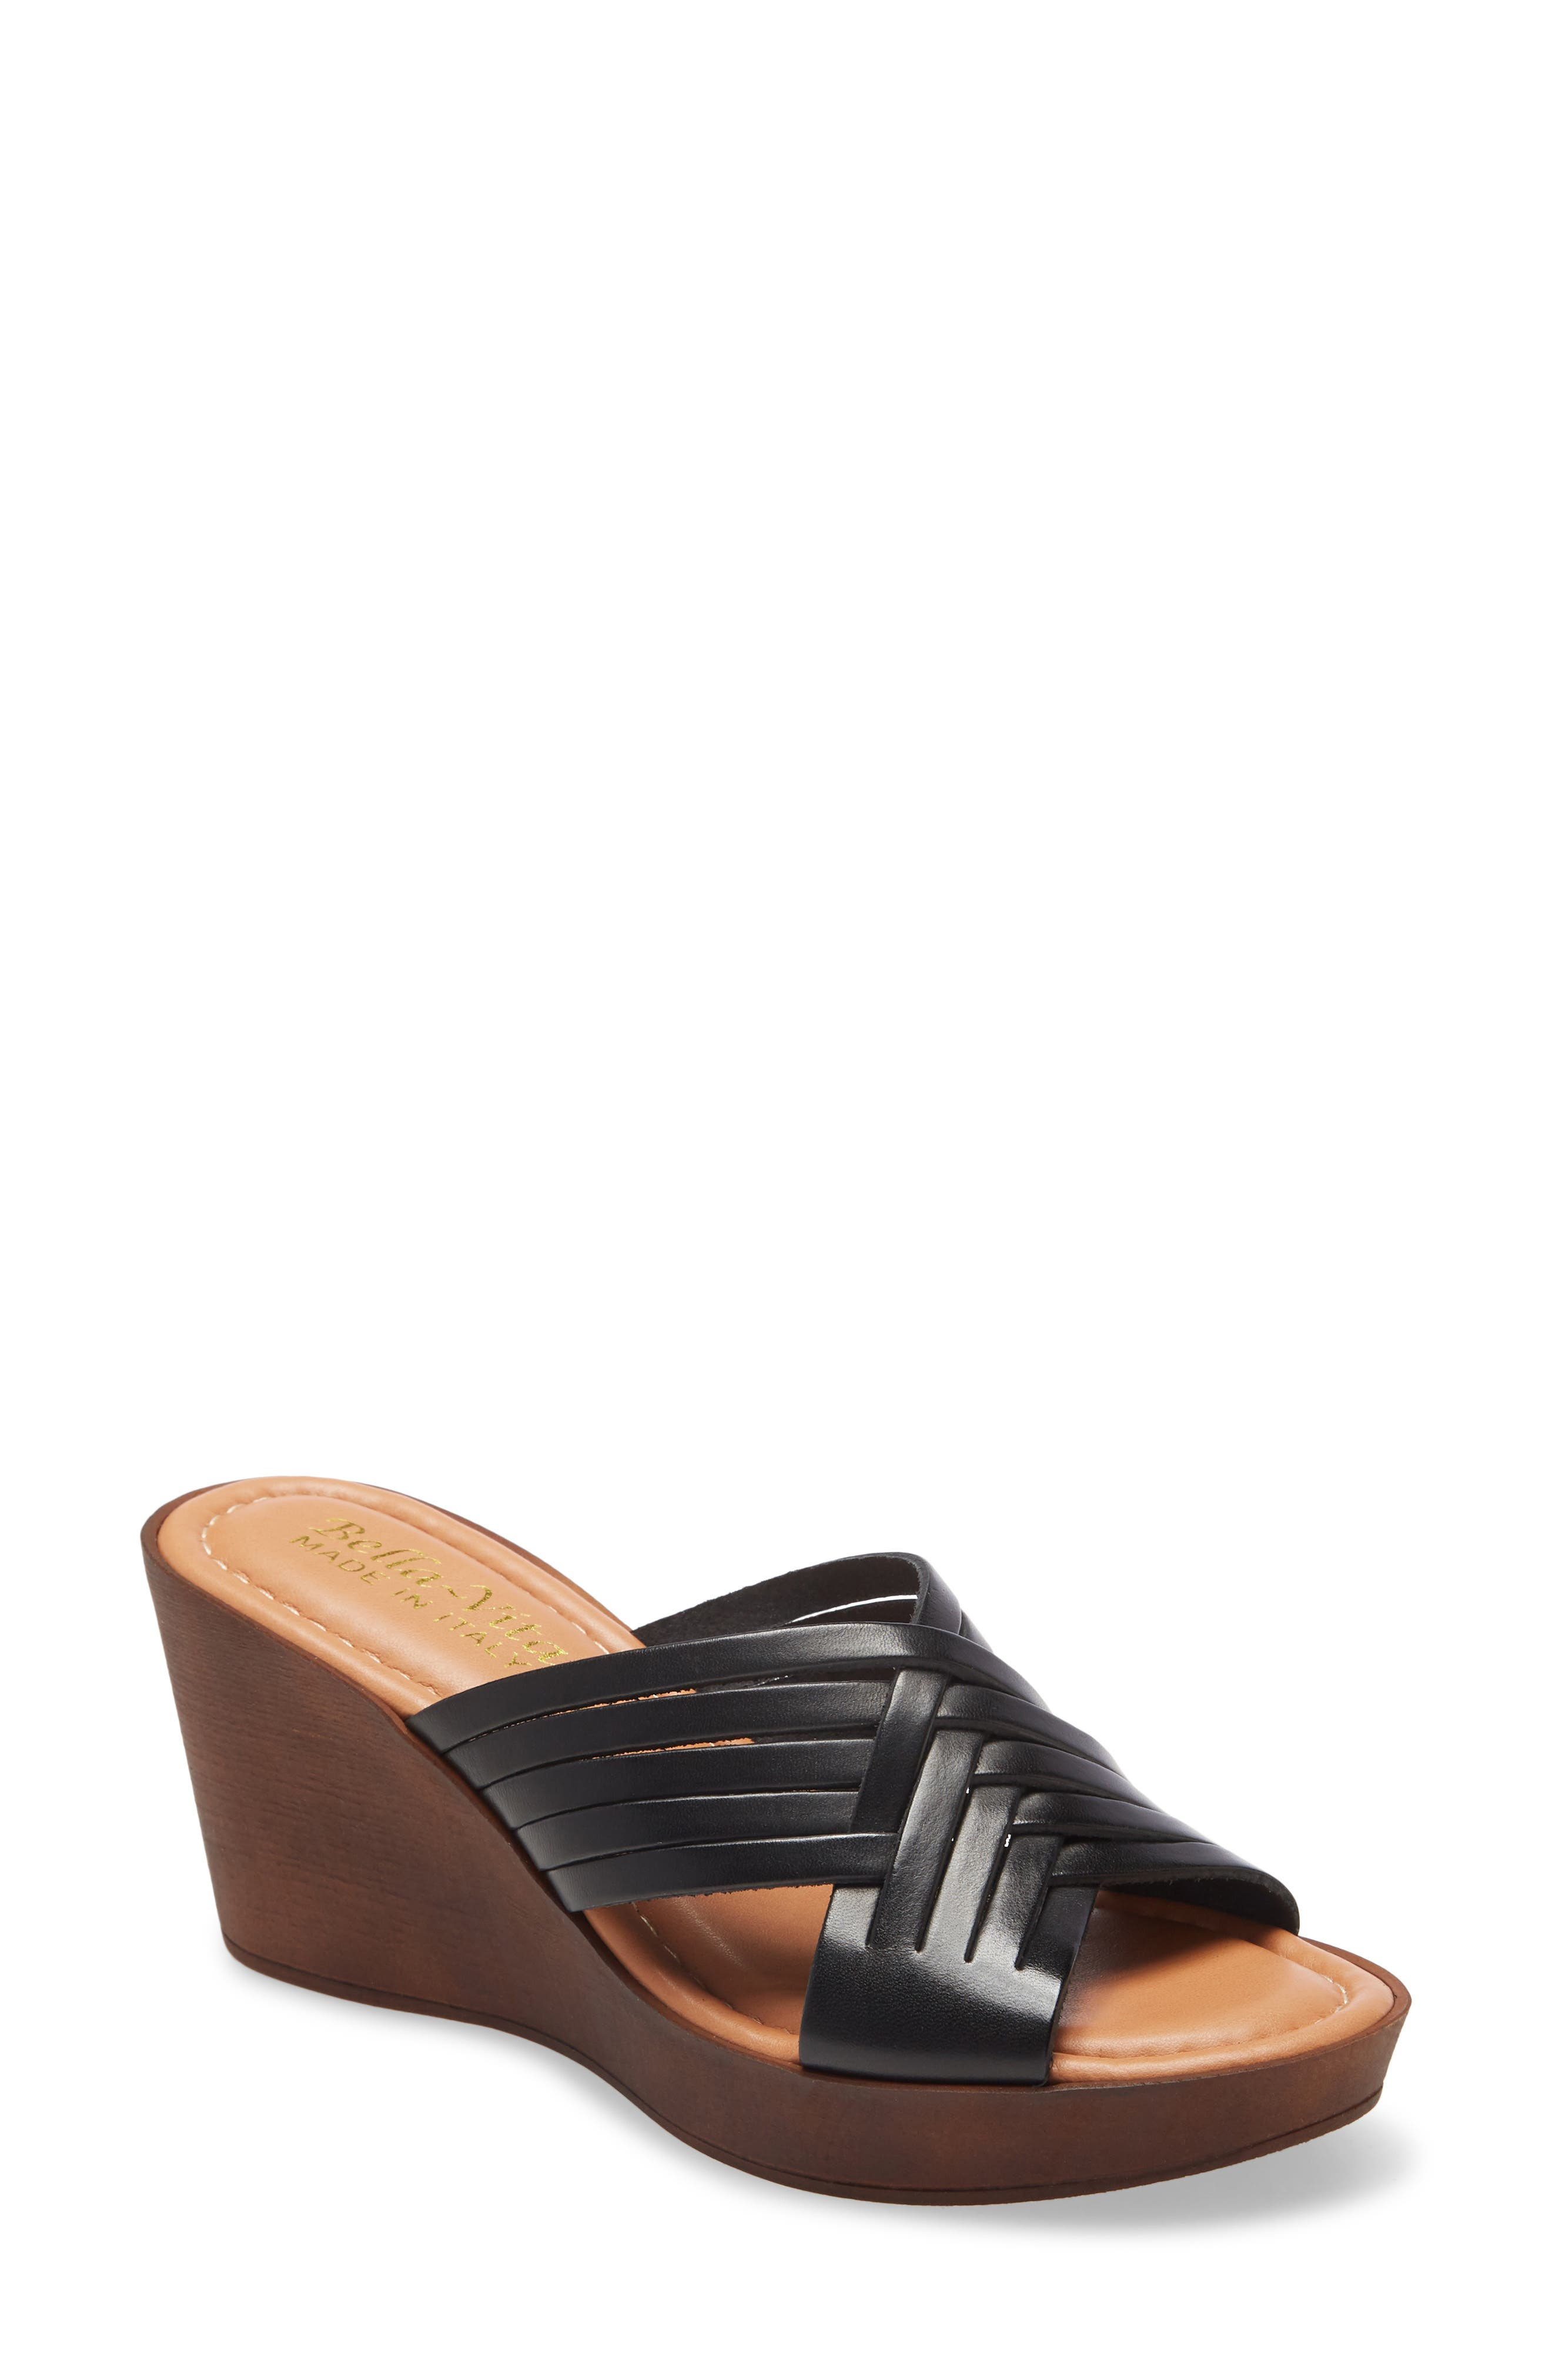 Italian leather straps cross at the vamp of a breezy slide sandal lofted by a woodgrain platform wedge. Style Name: Bella Vita Cat Wedge Slide Sandal (Women). Style Number: 5984398. Available in stores.